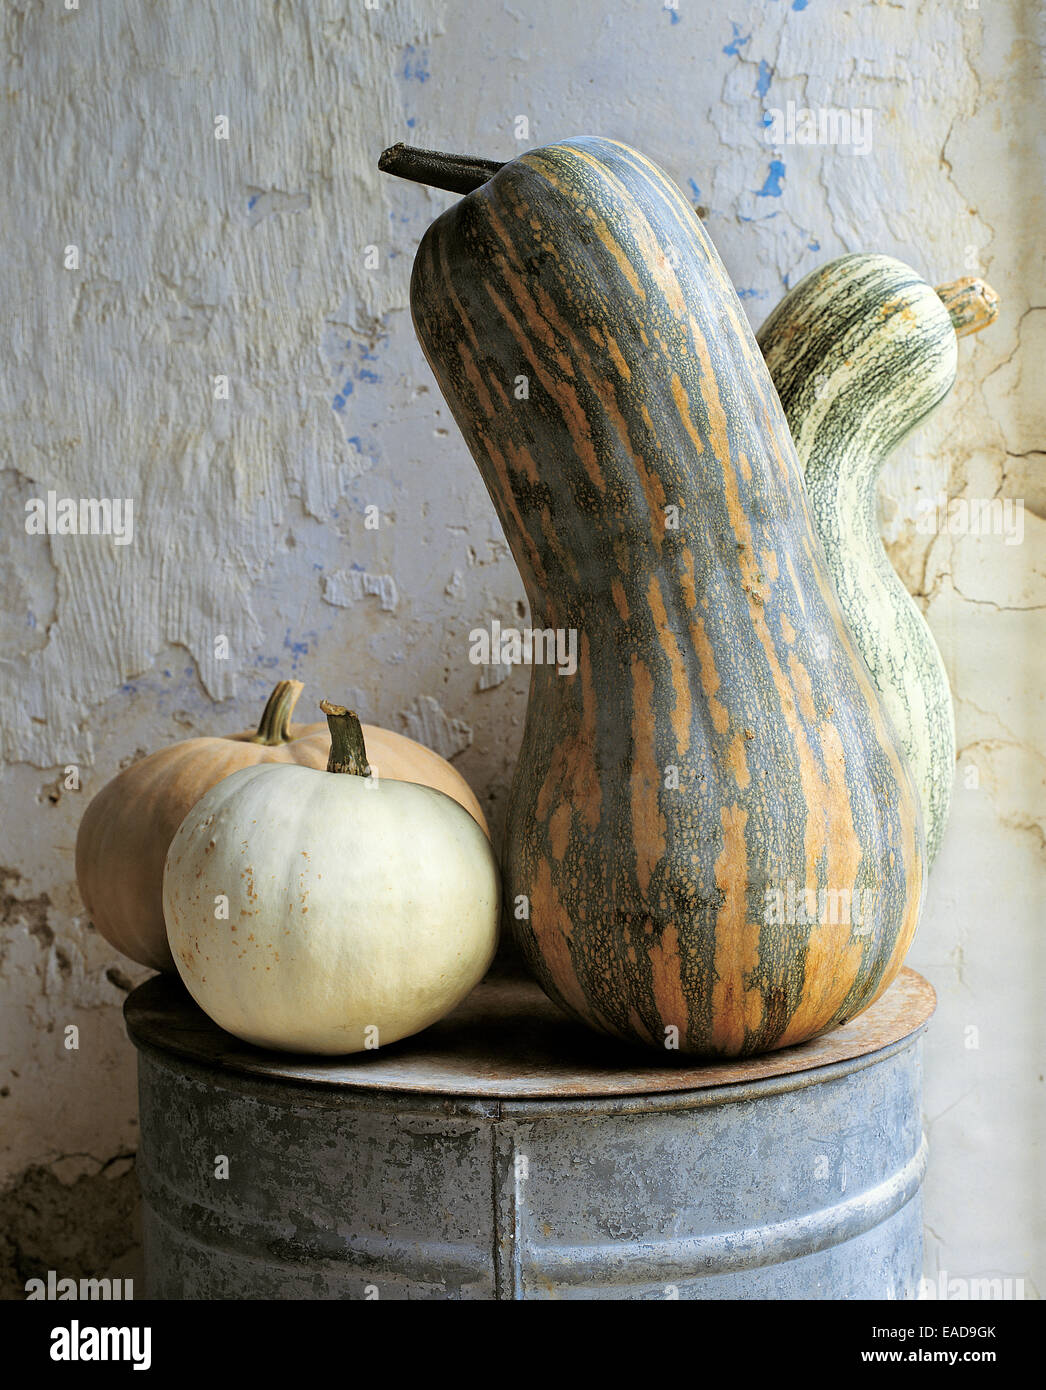 various squash and gourds at farm - Stock Image